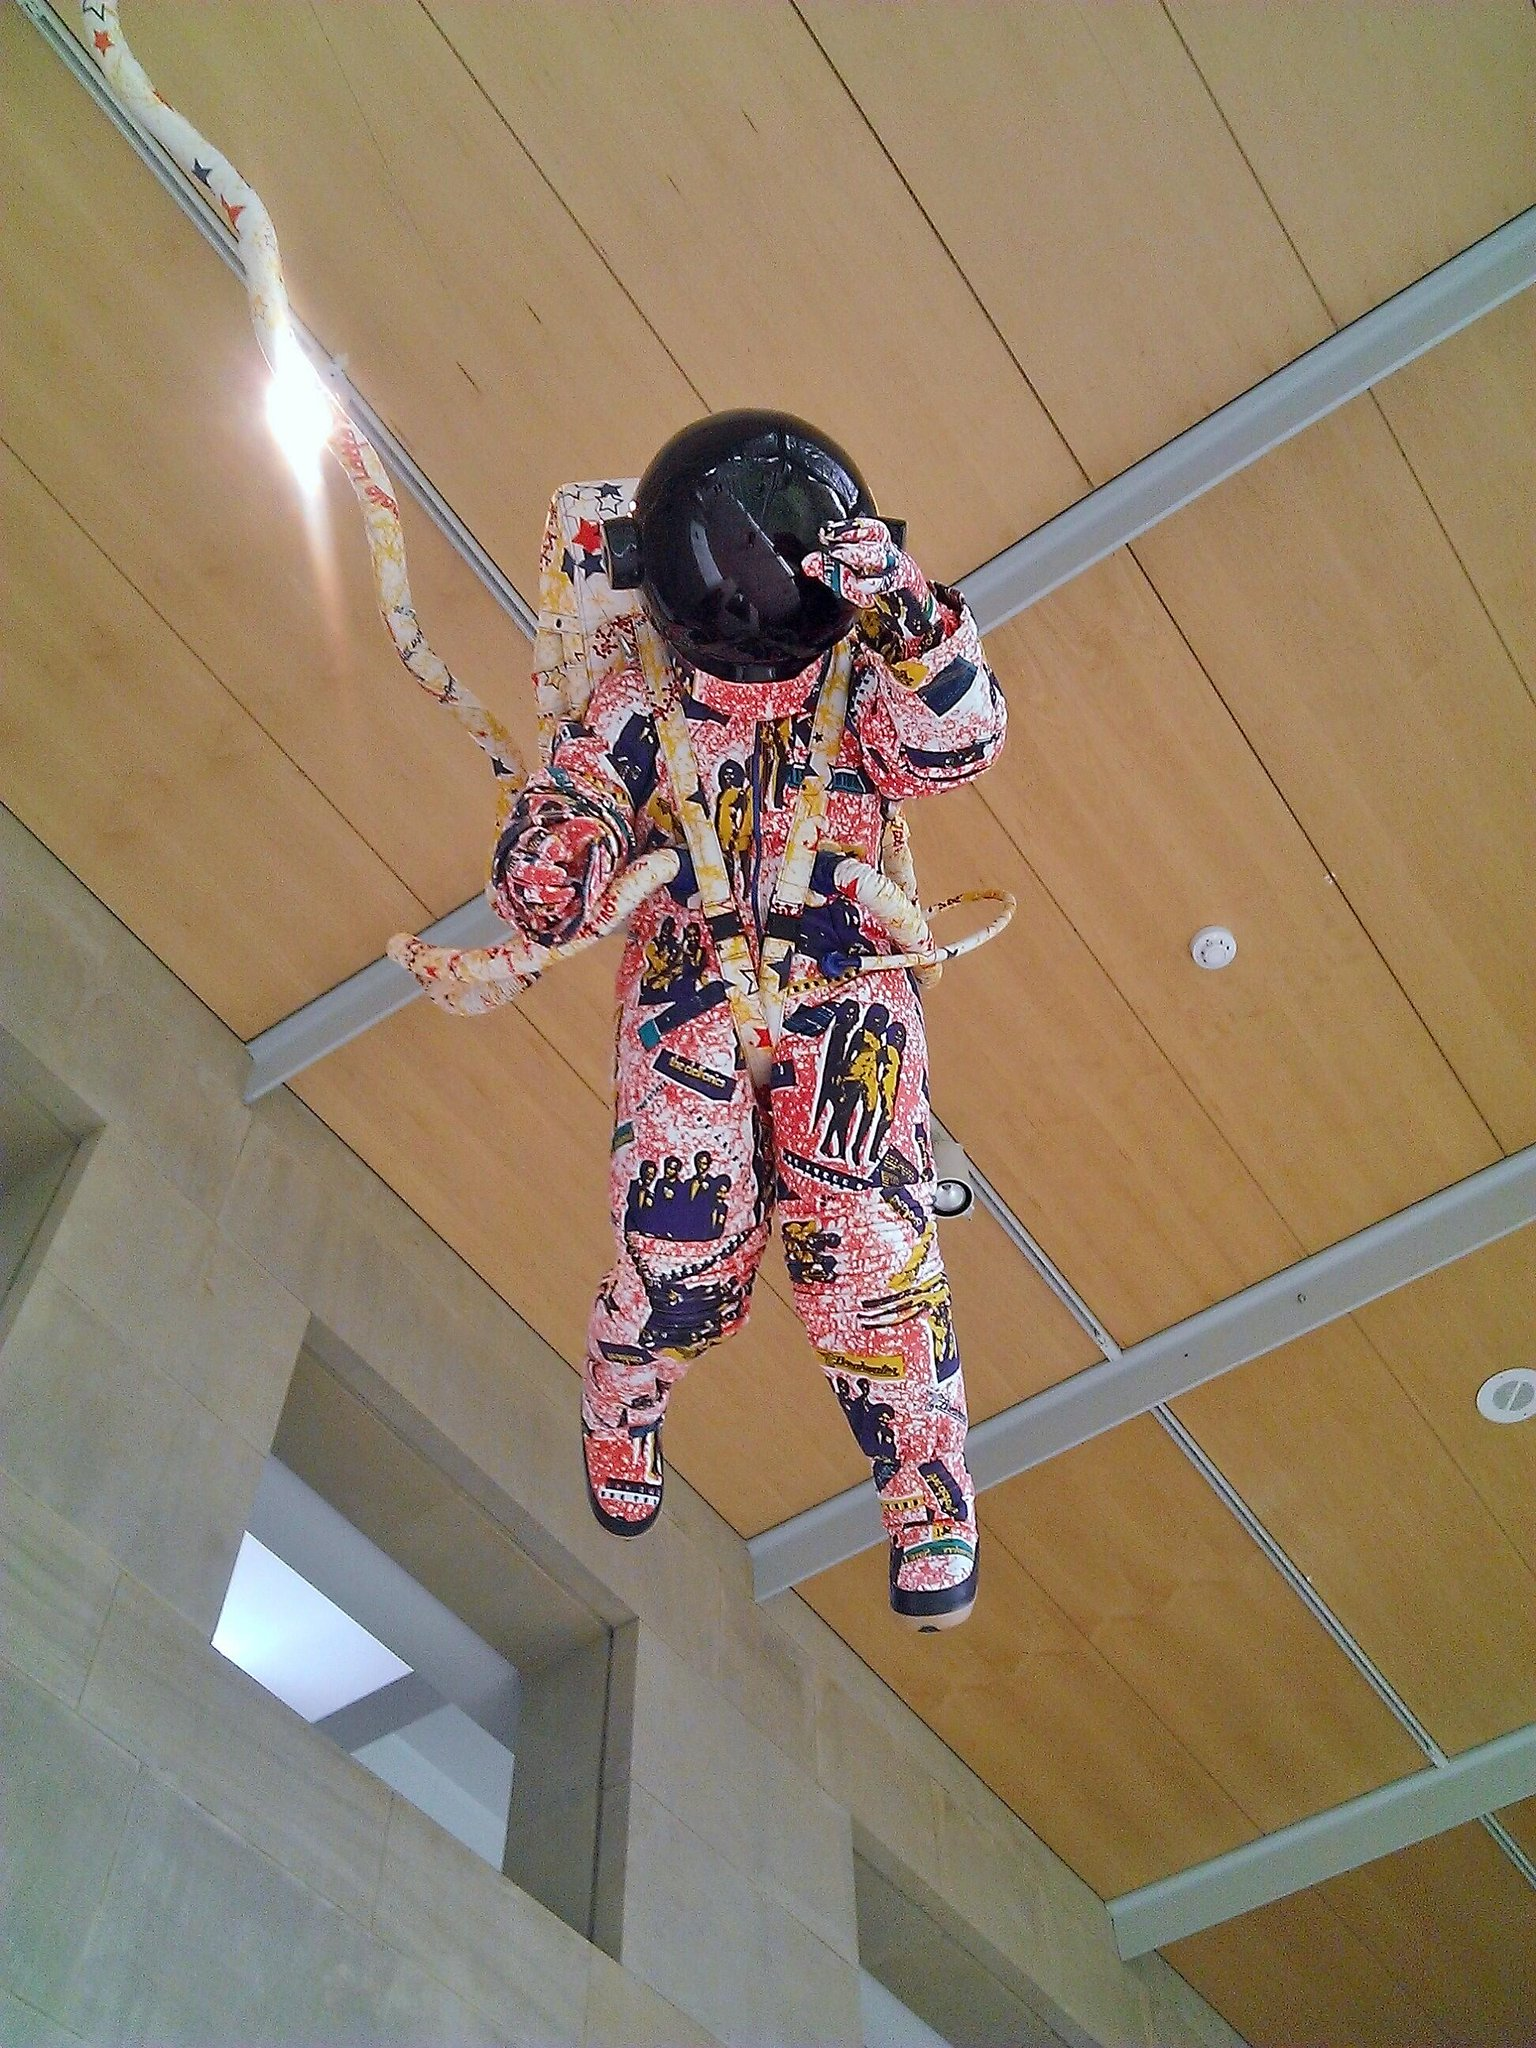 RT @MissObina: It's an Afronaut! By the brilliant Yinka Shonibare MBE @YSPsculpture. NASA outfits designer, please take note http://t.co/TNHsCv8HeL